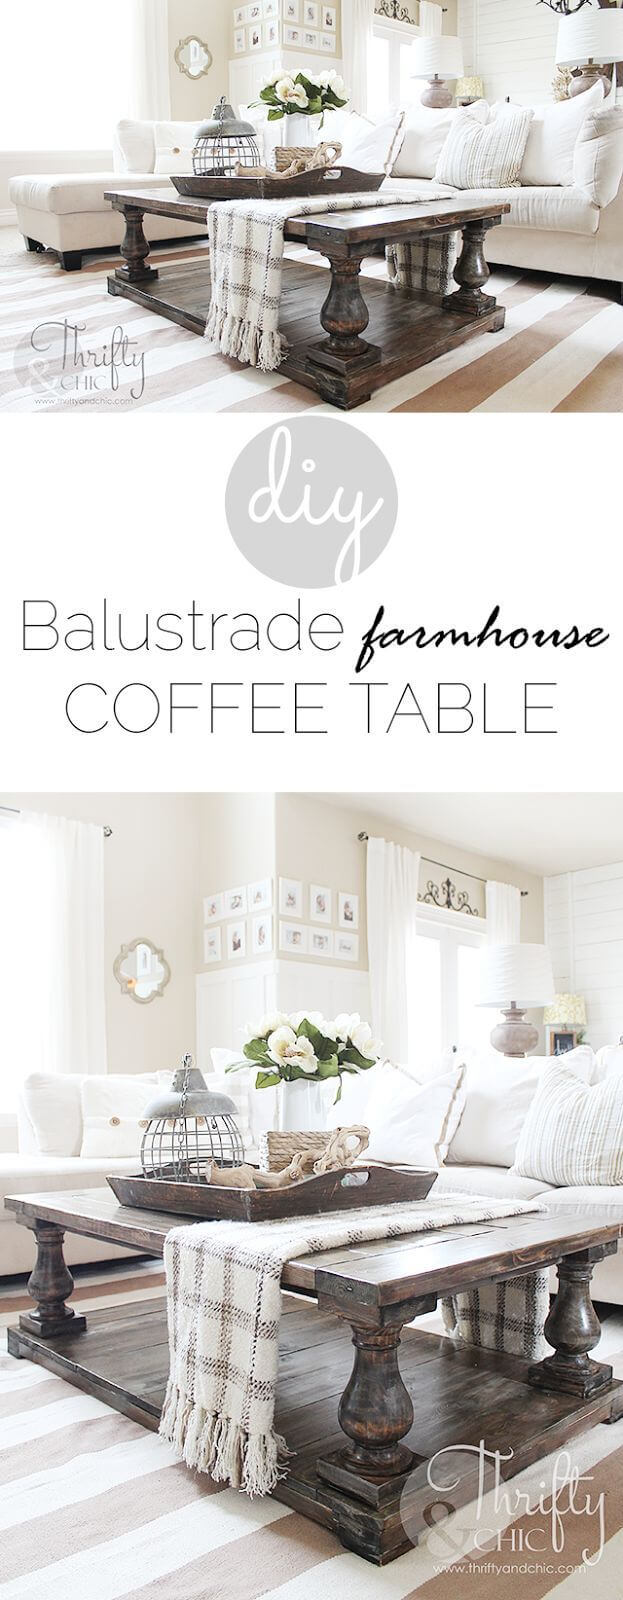 best diy farmhouse coffee table ideas and designs for homebnc accent decor big bold balustrade centerpiece end tables with electrical antique cabinet legs wood boho centerpieces